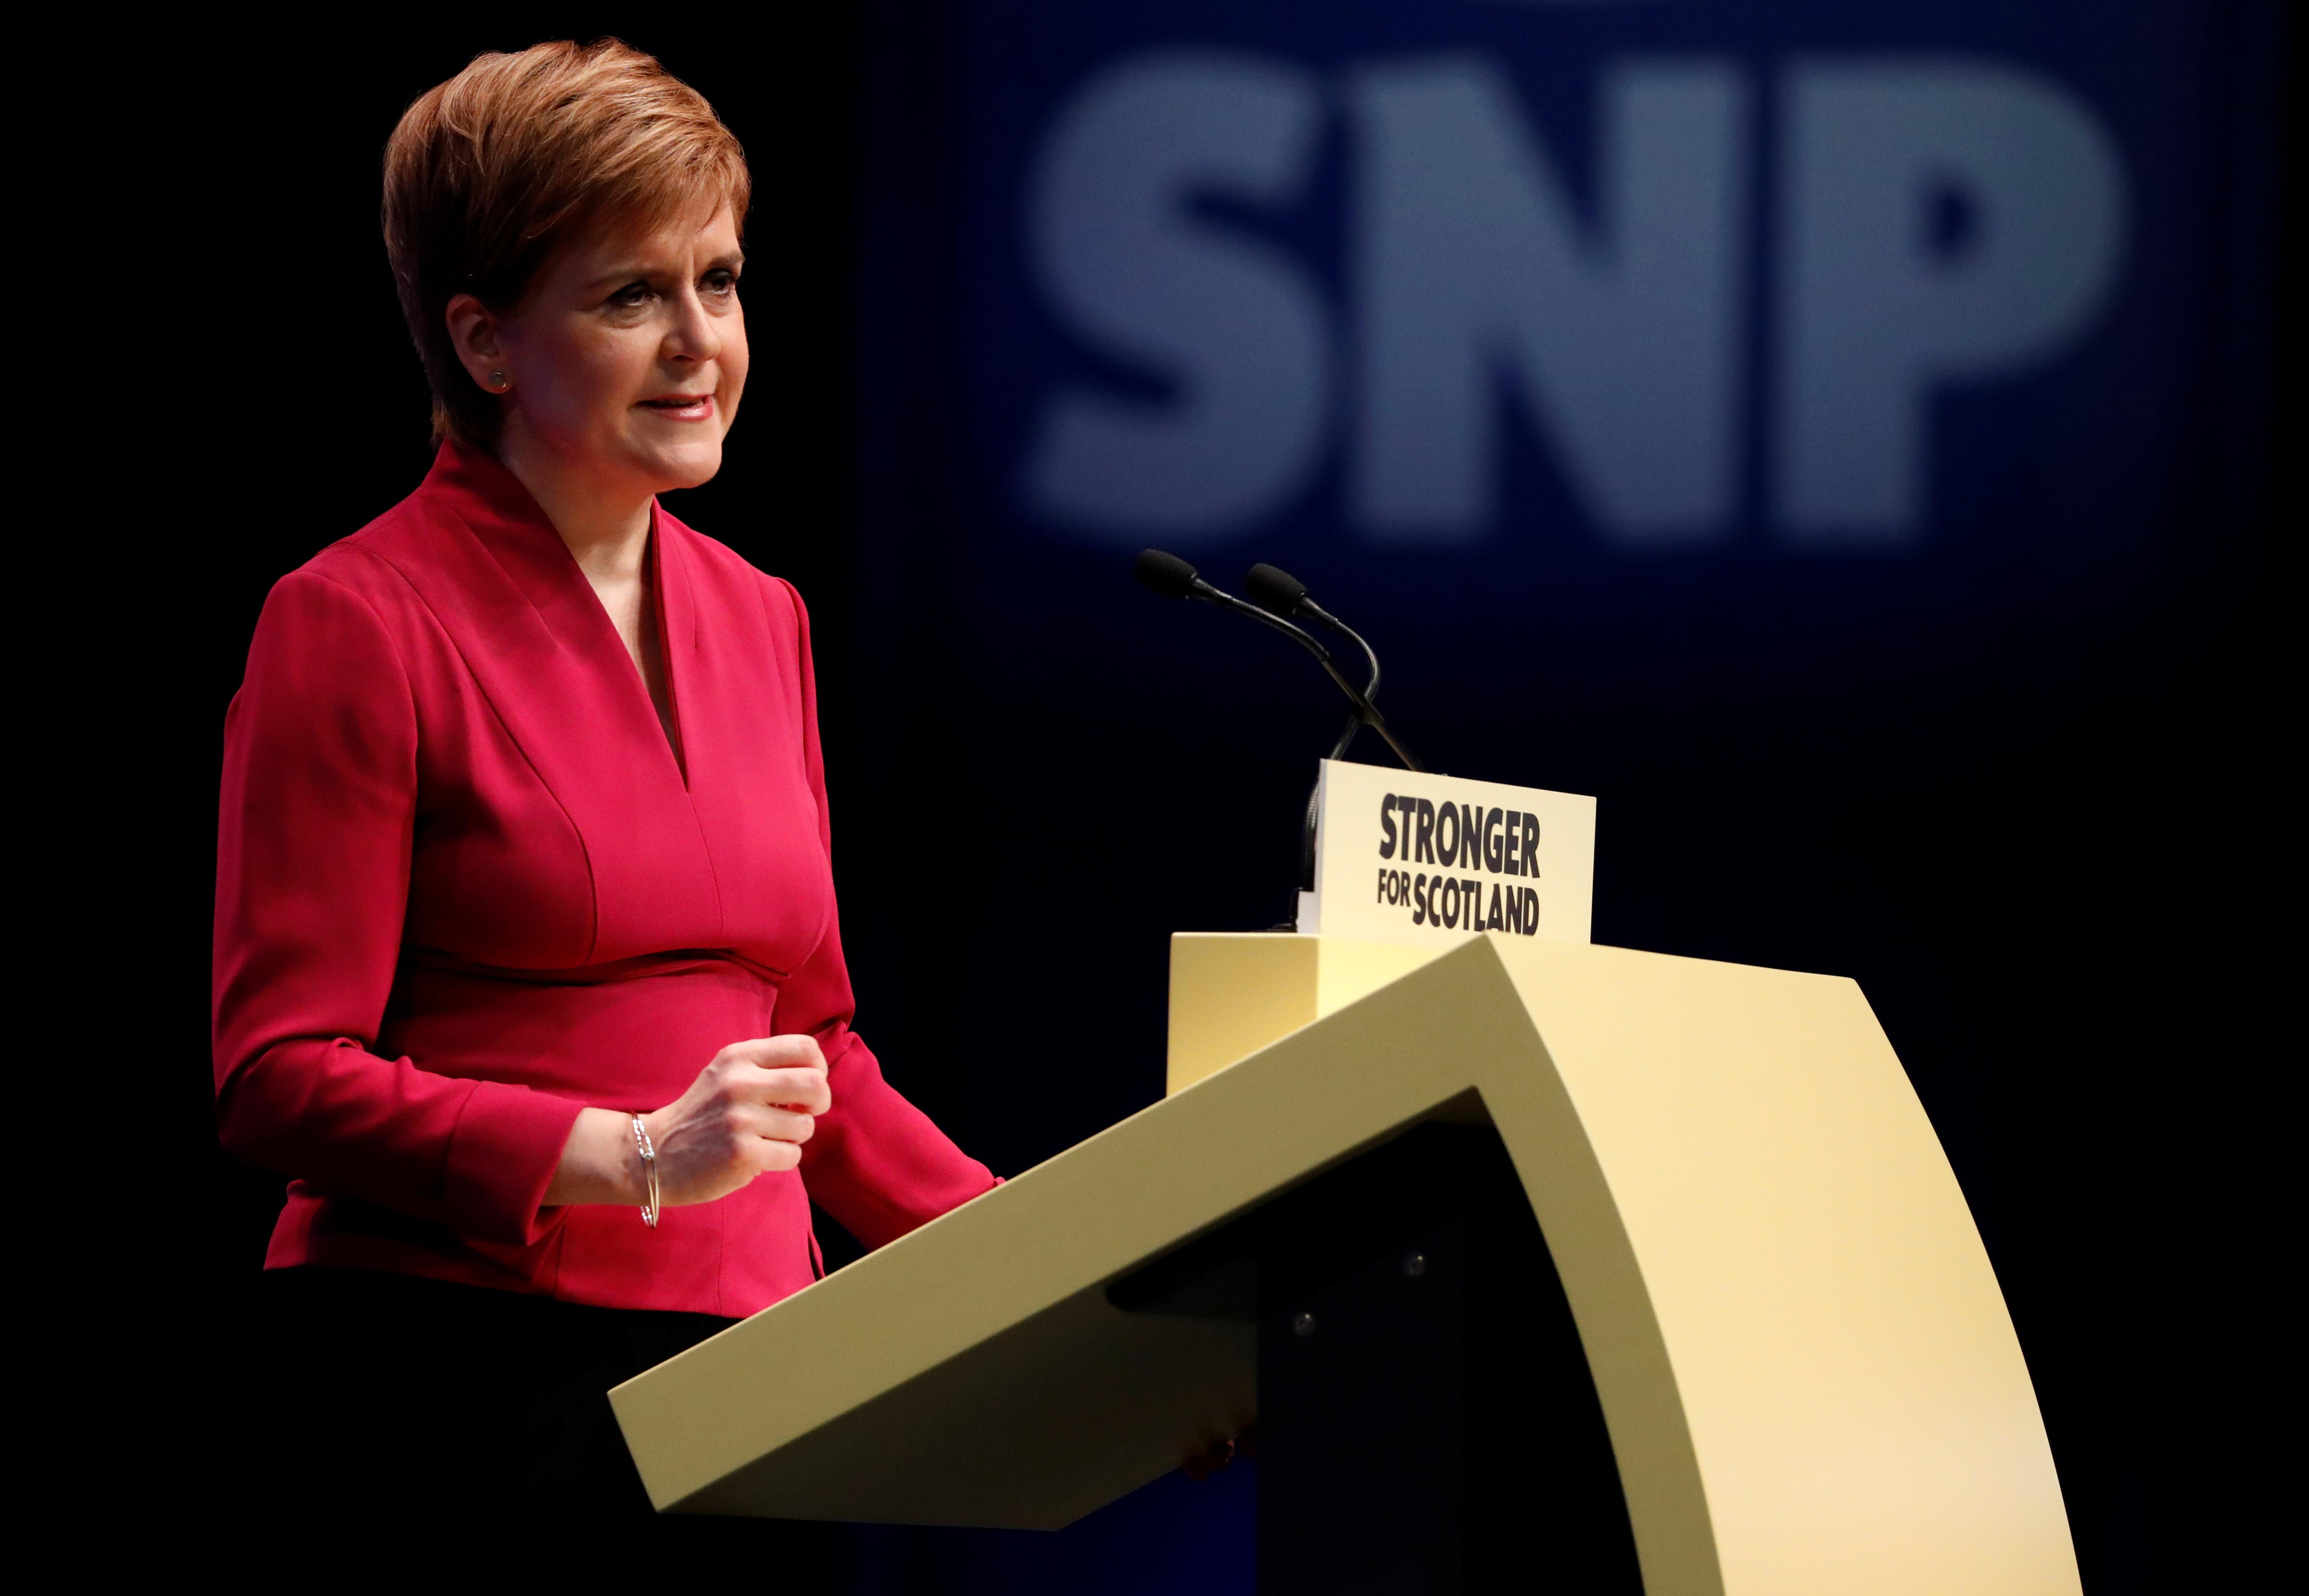 Scotland's Sturgeon says SNP will not vote for Johnson's Brexit deal